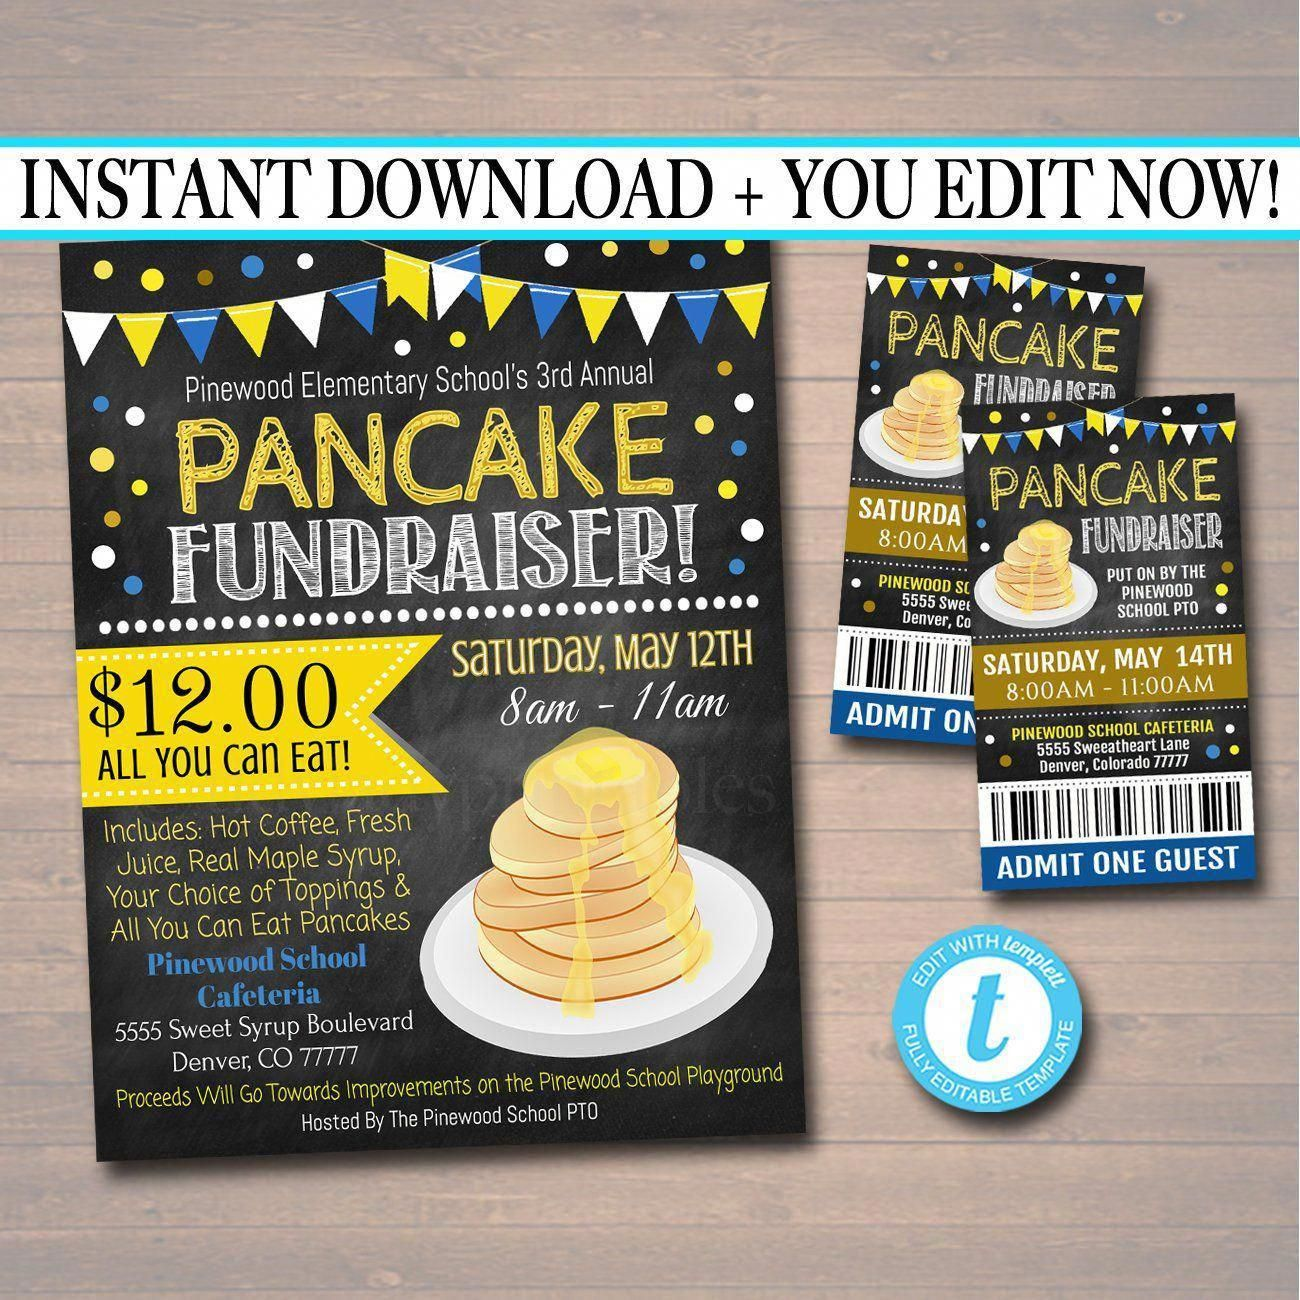 Pancake Breakfast Fundraiser Ticket Template